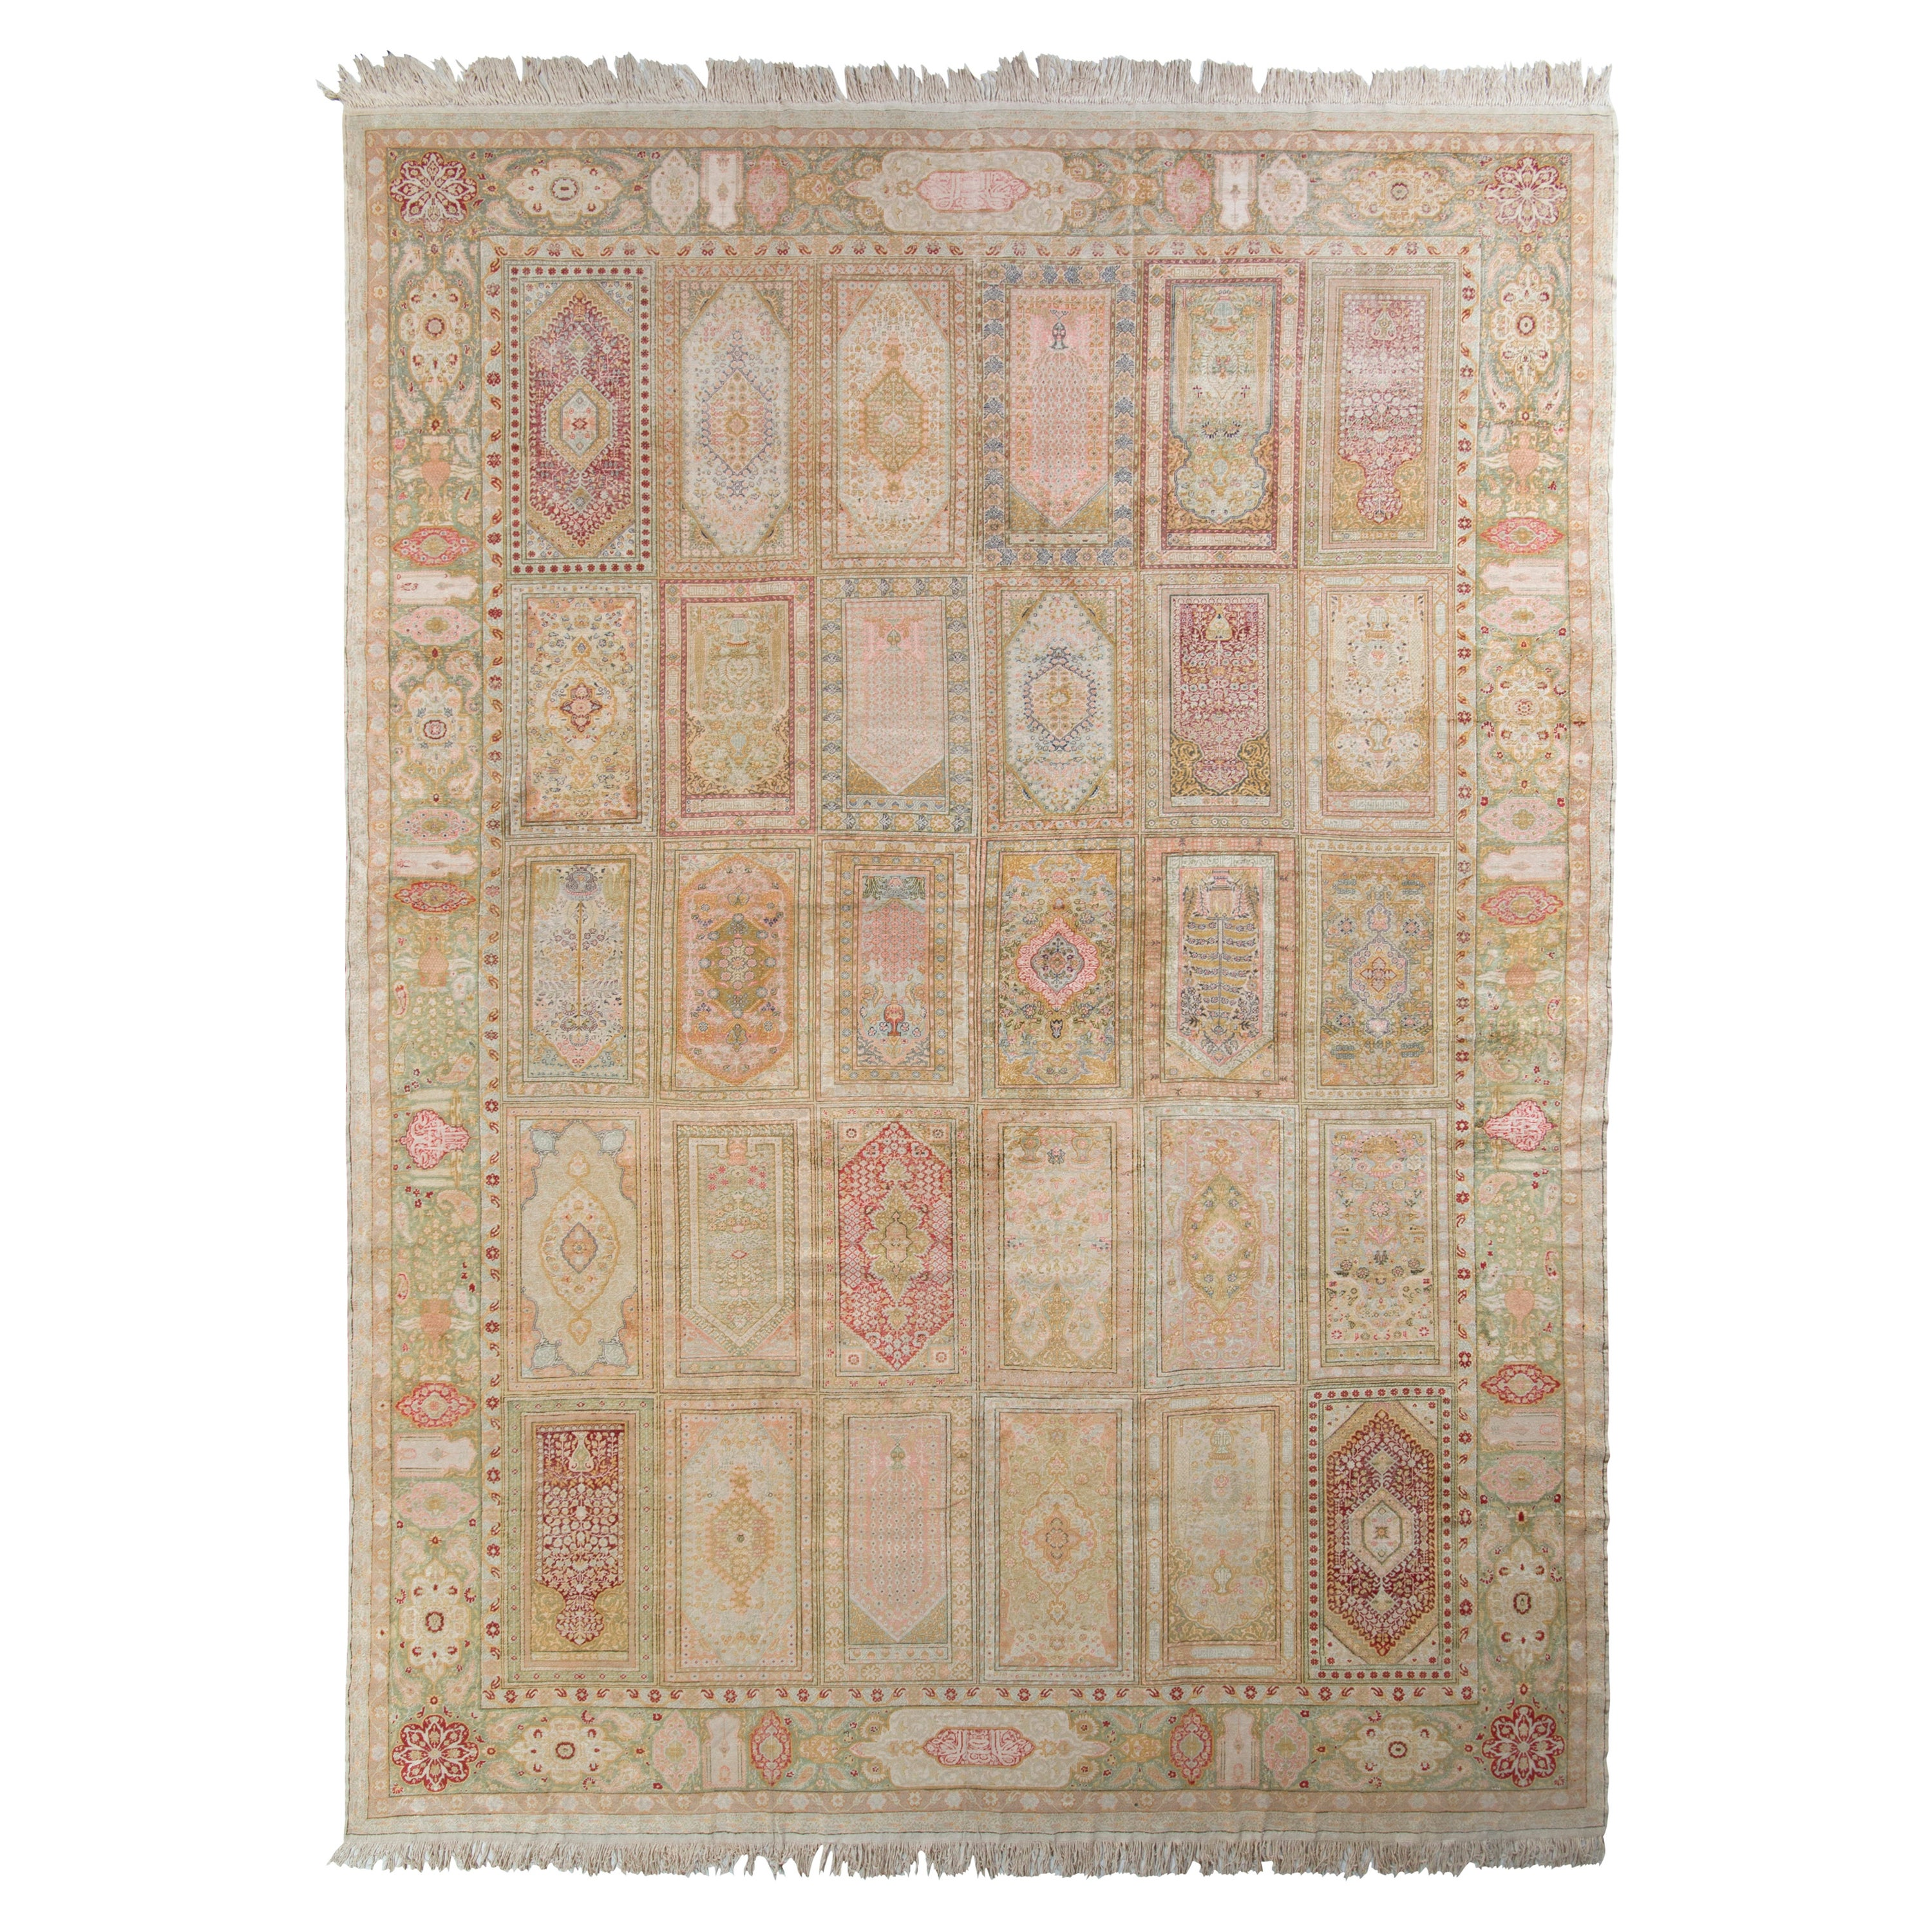 Hand Knotted Antique Hereke Rug in Beige Green and Pink Floral Pattern